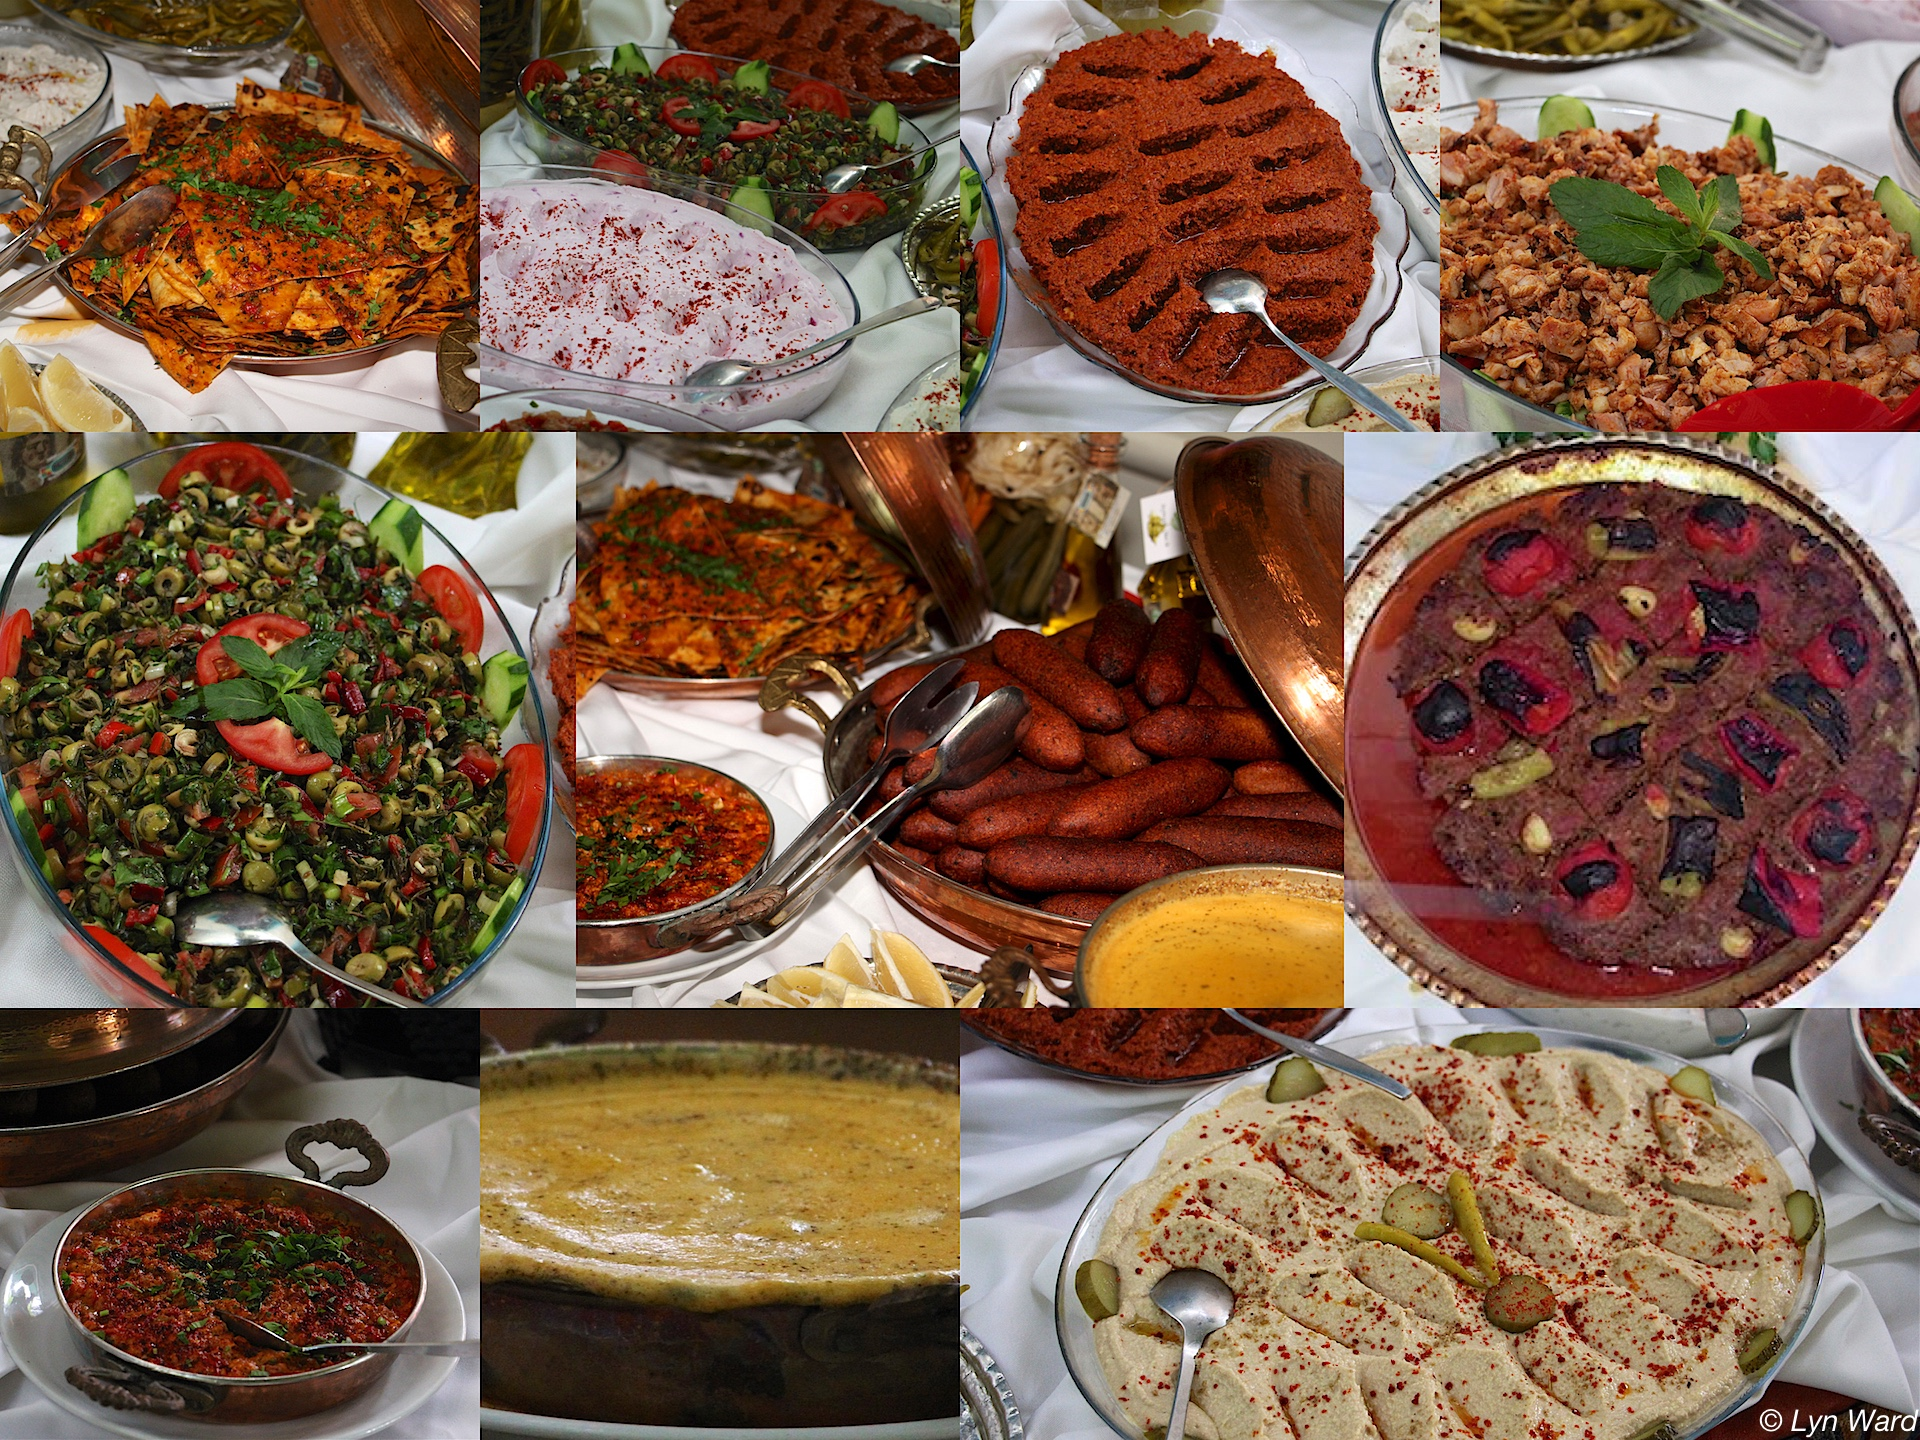 A selection of dishes from the menu at Mozaik Bahçe